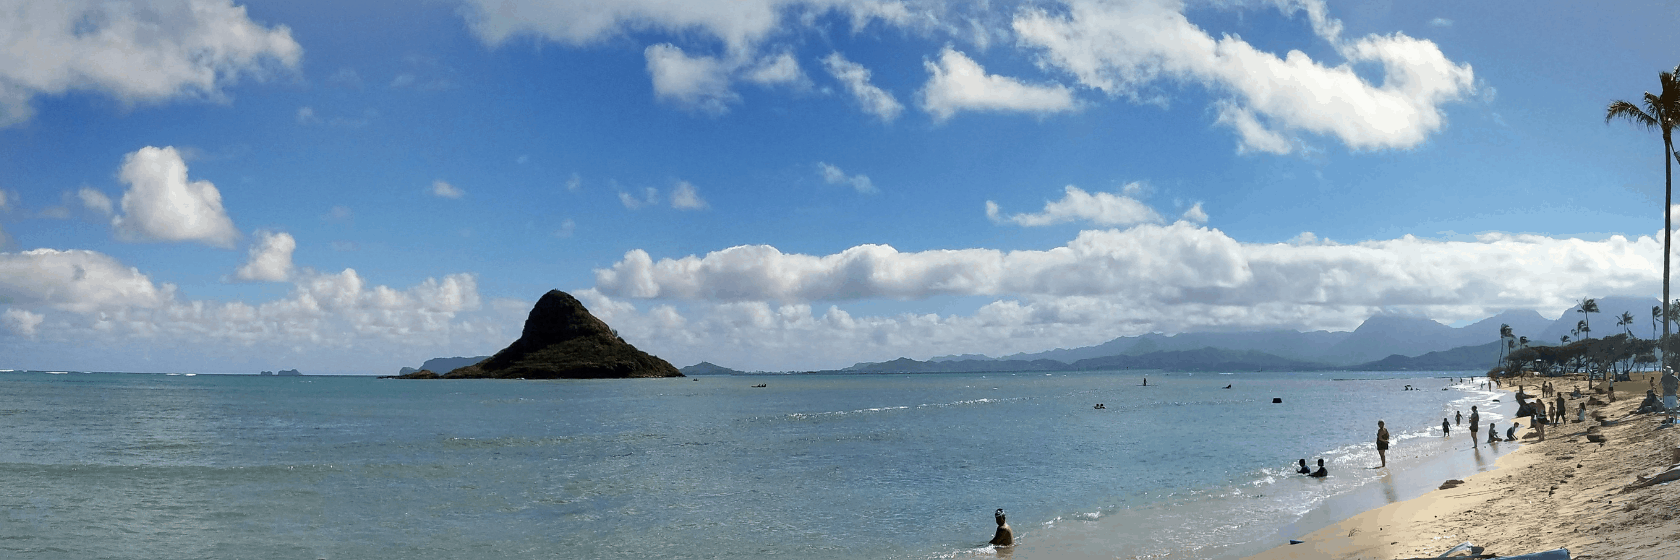 oahu beach and mountain with water in foreground